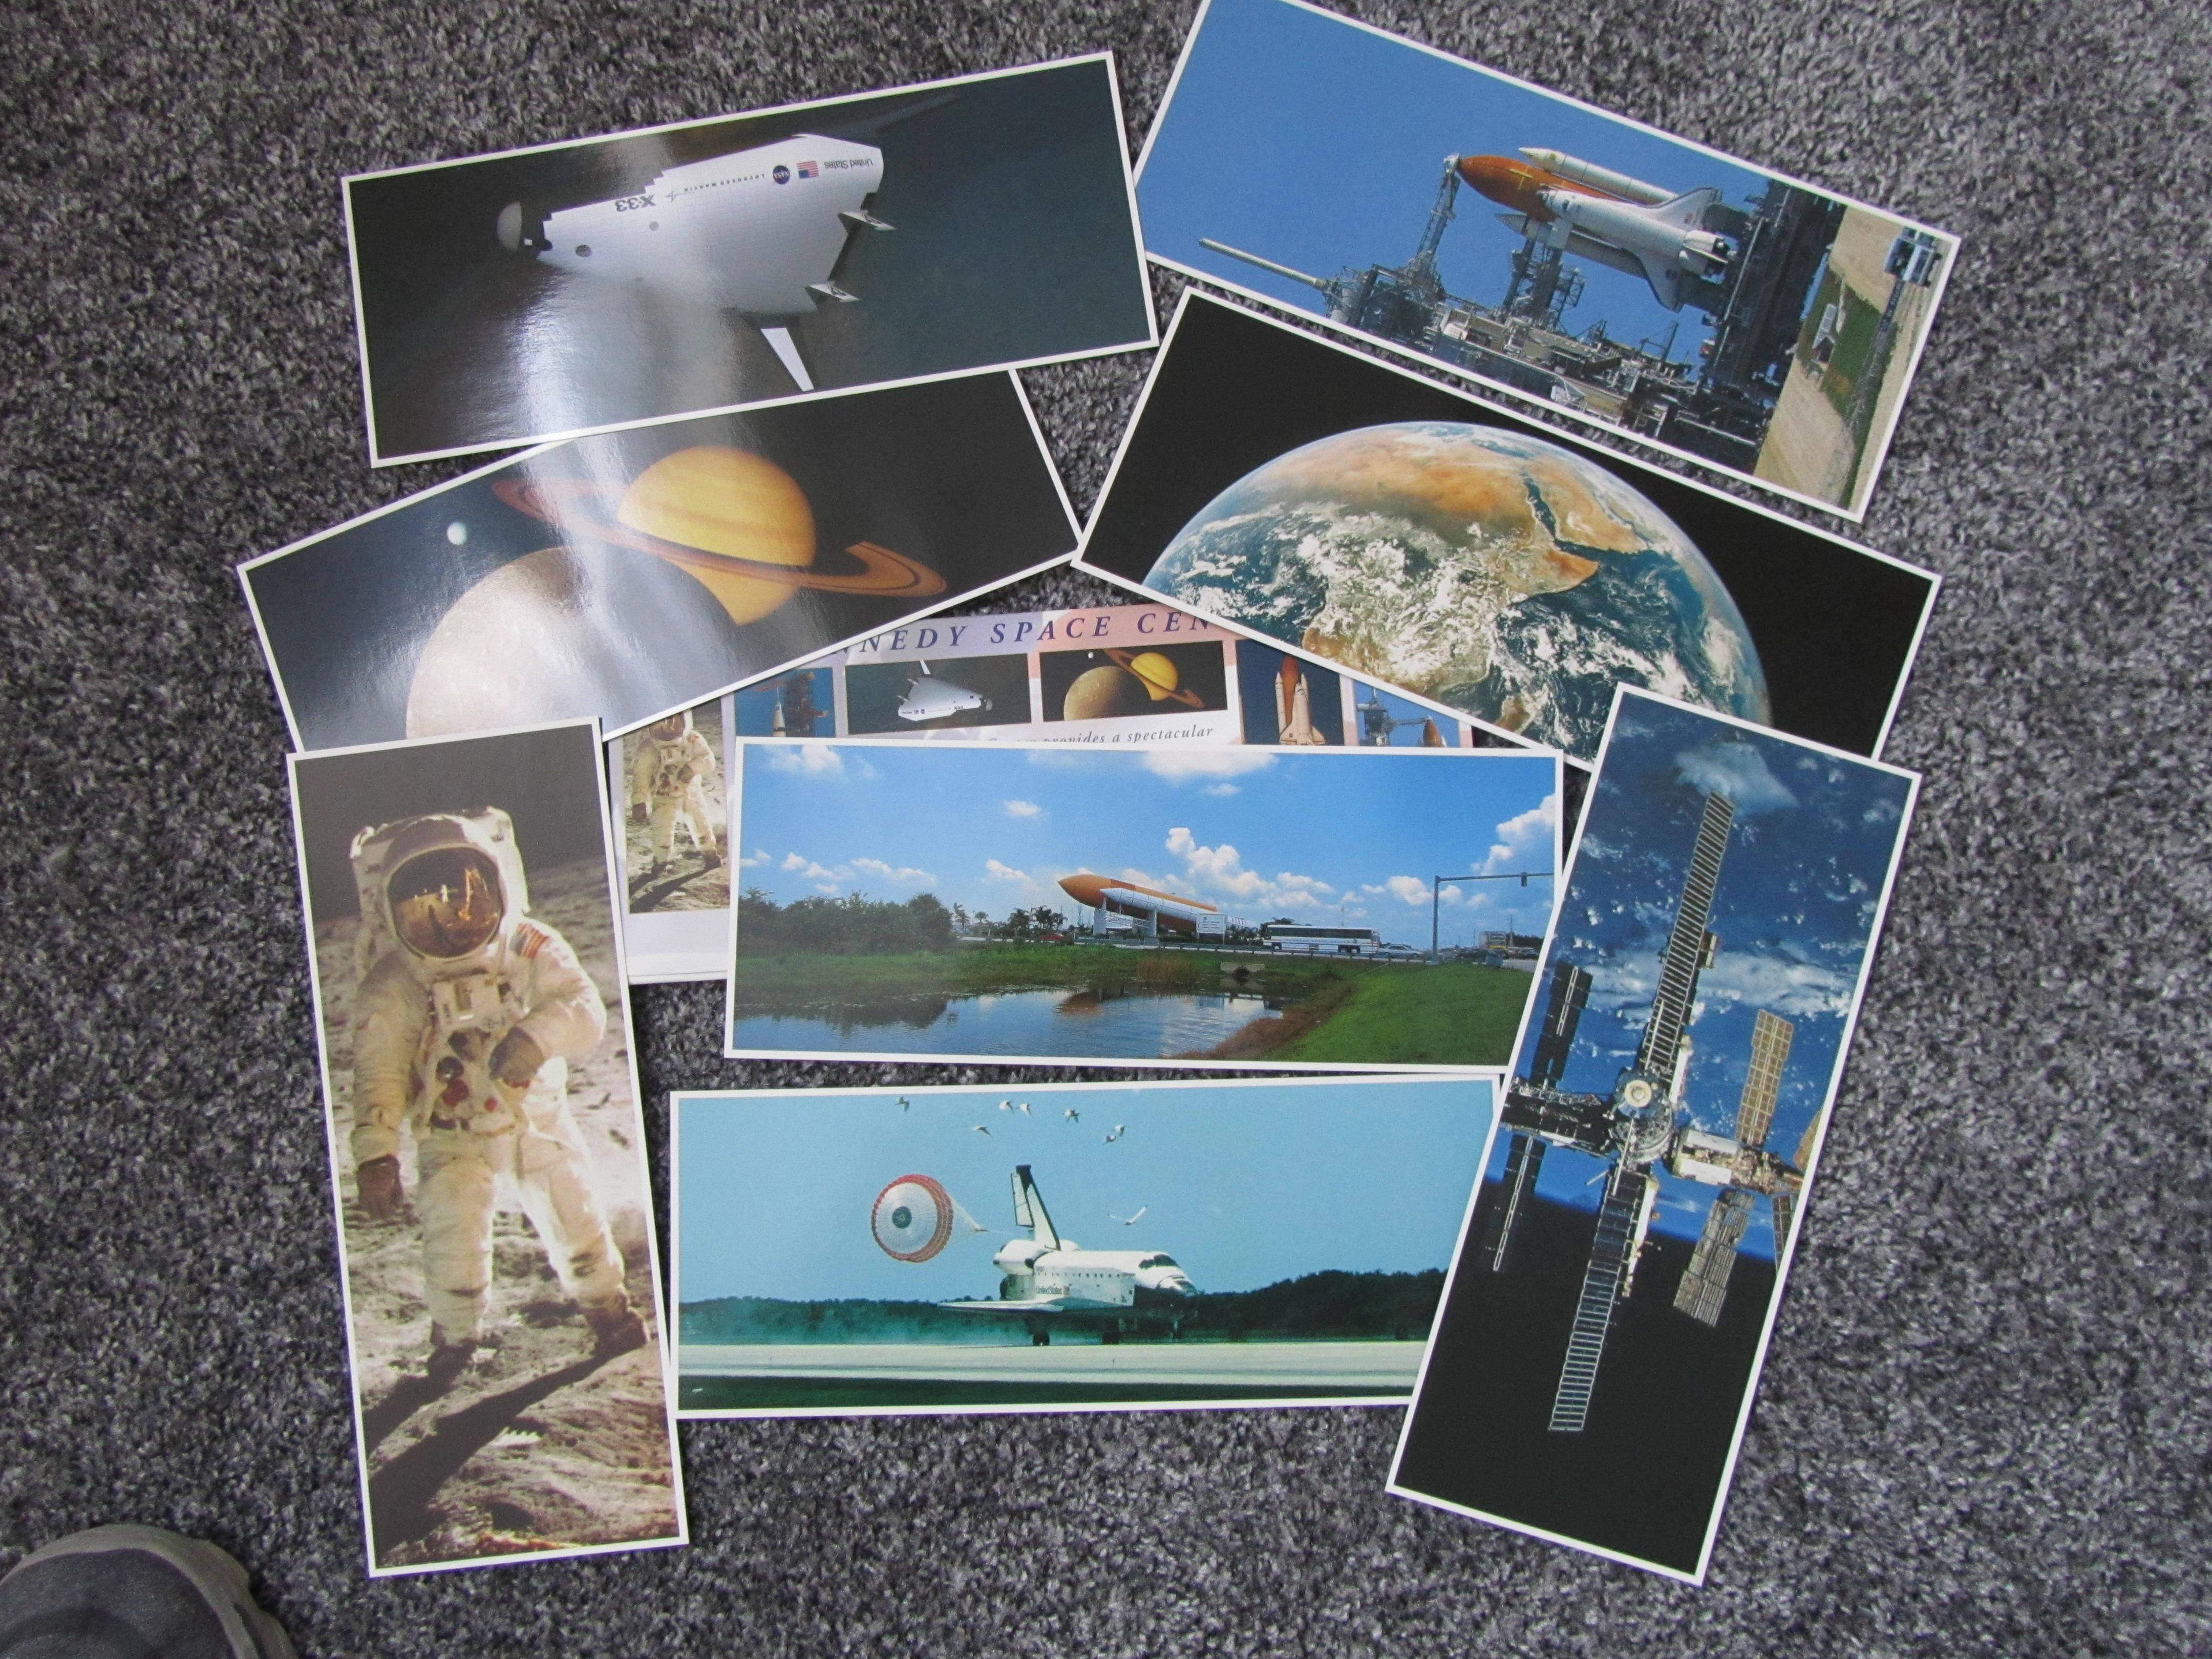 Space Gemini, Apollo and space shuttle photos and badges